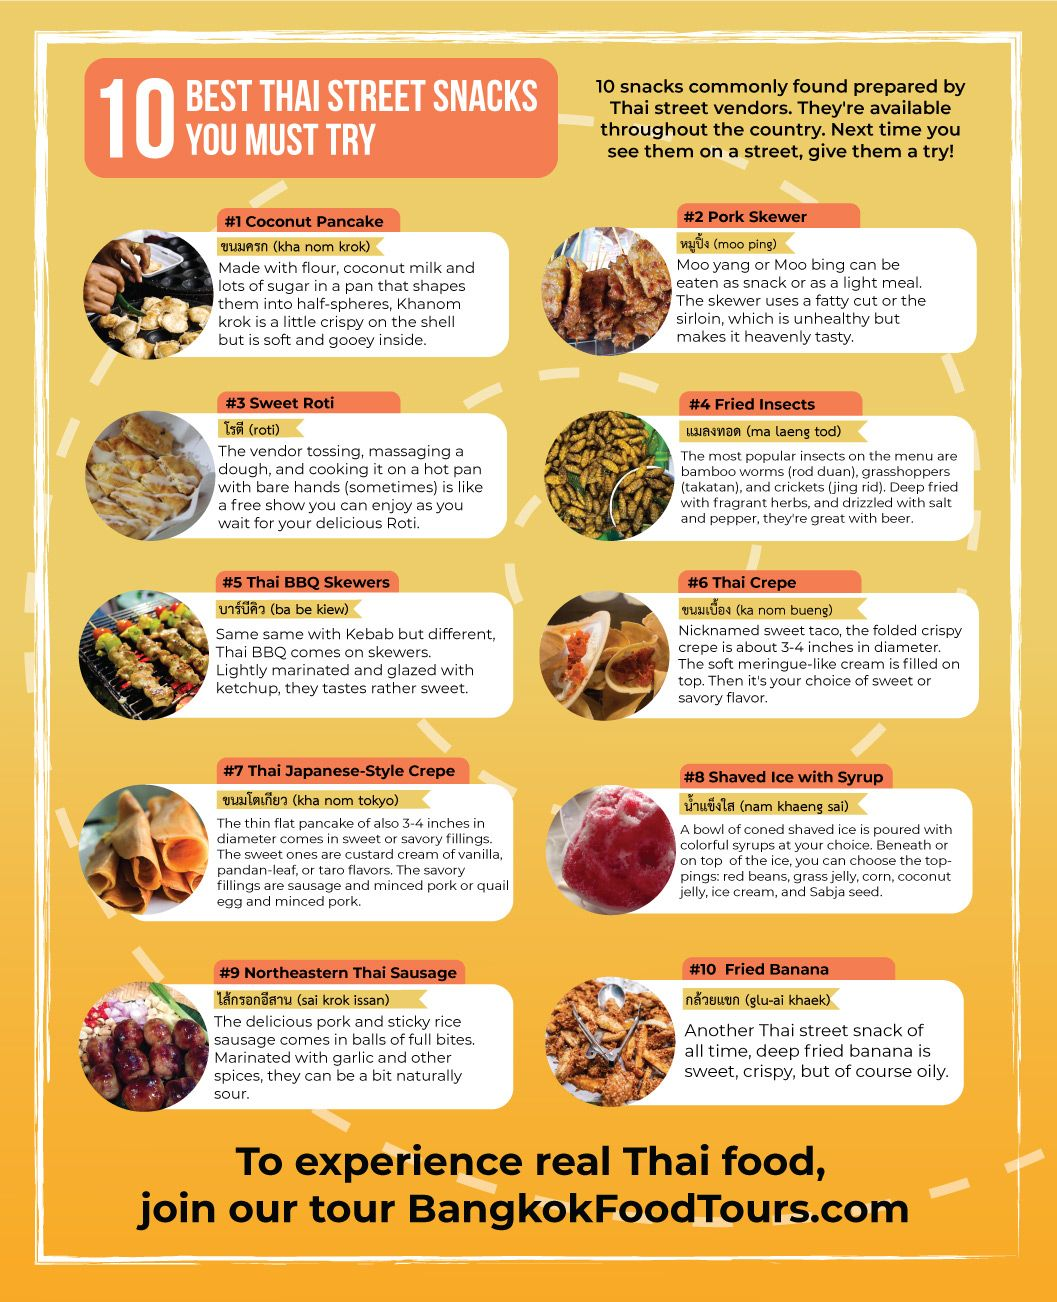 10 Best Thai Street Snacks You Must Try (With images ...